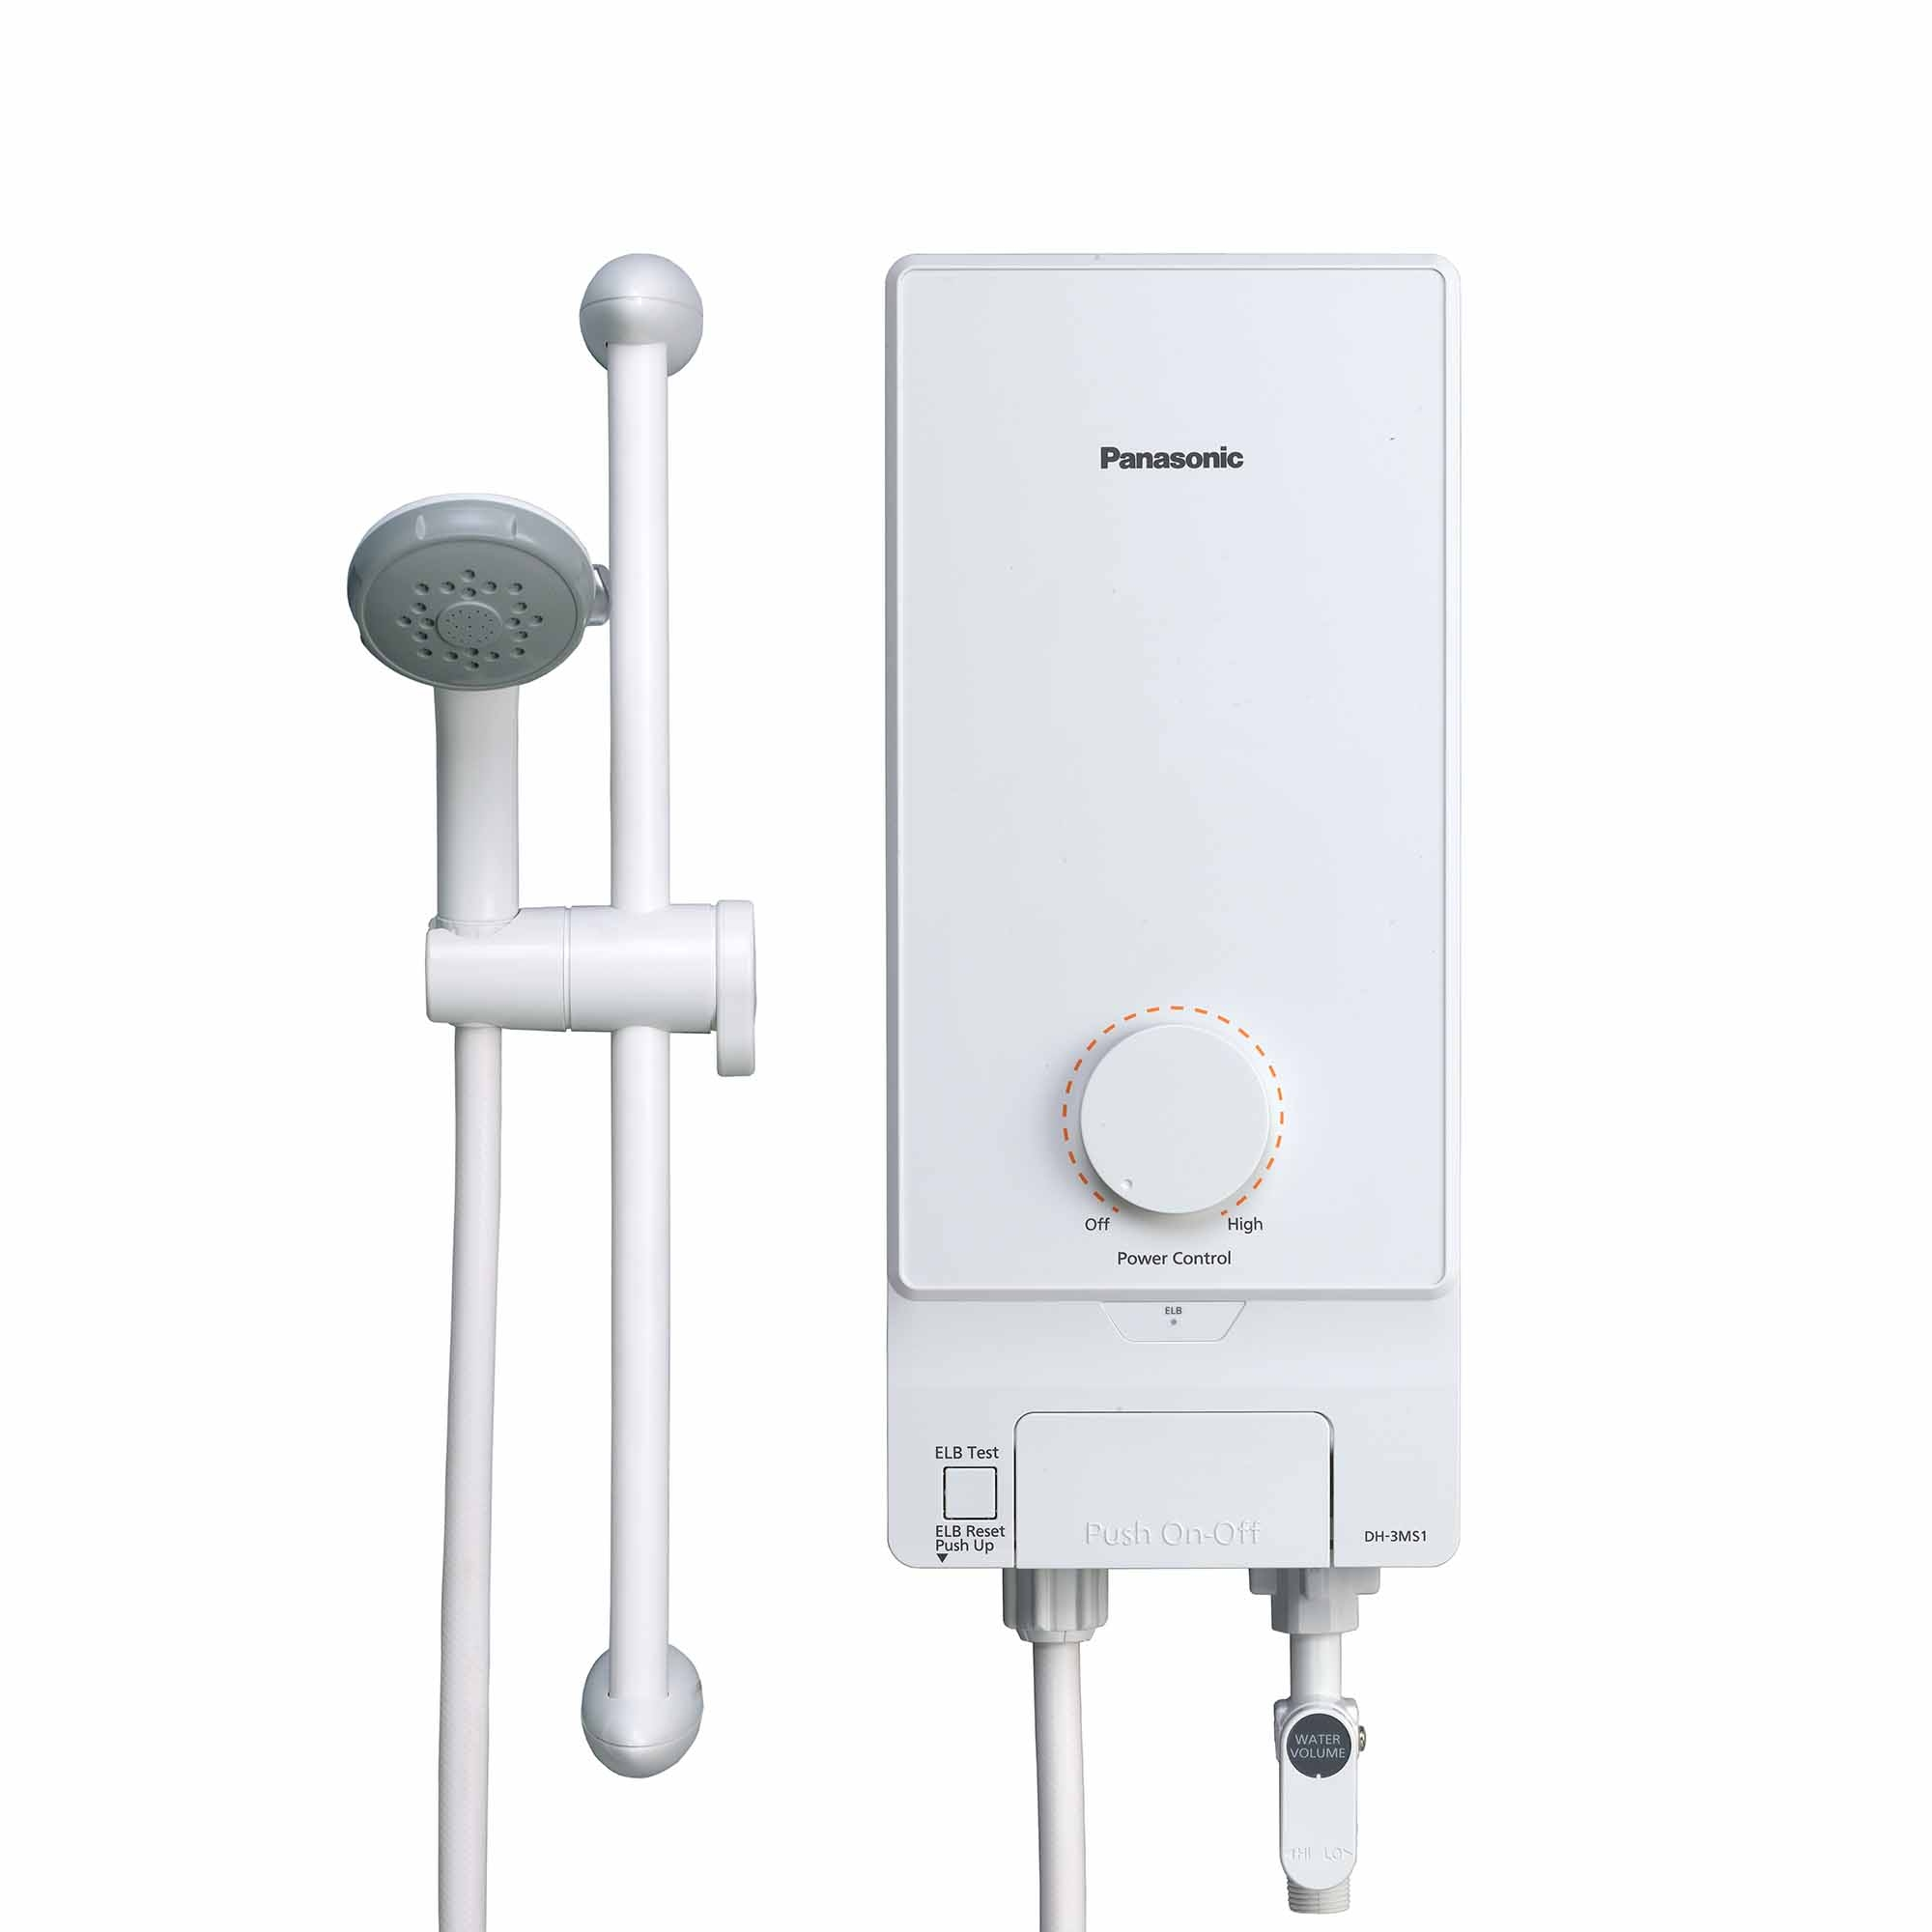 Panasonic water heater dh 3ms1 non p end 5 2 2020 8 31 pm - Shower water heater ...